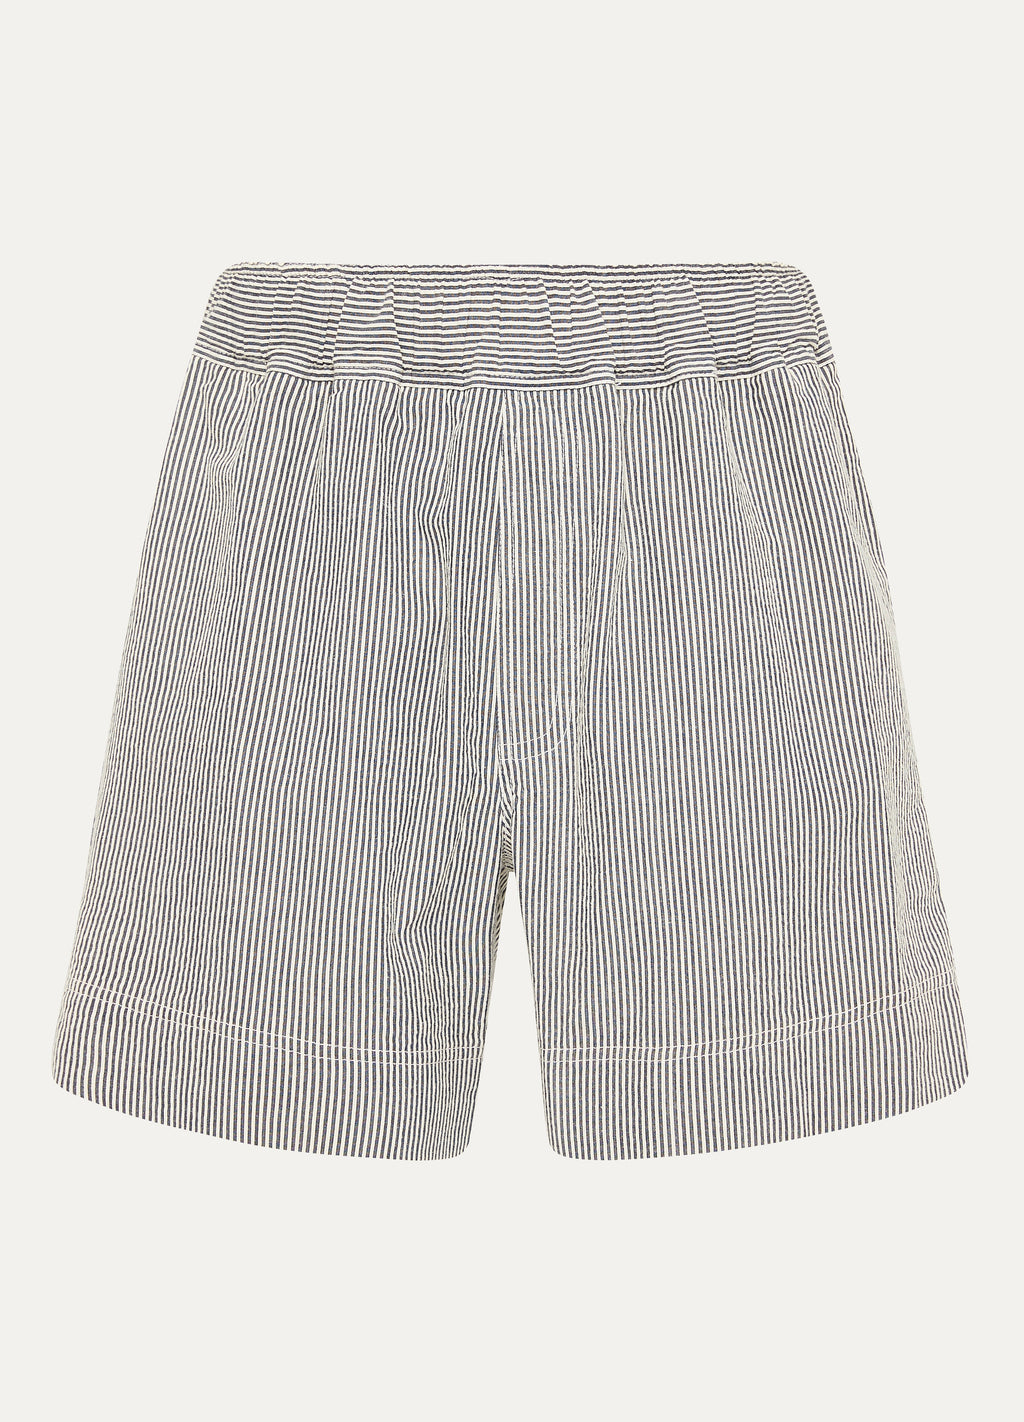 Japanese Blue Stripe Short